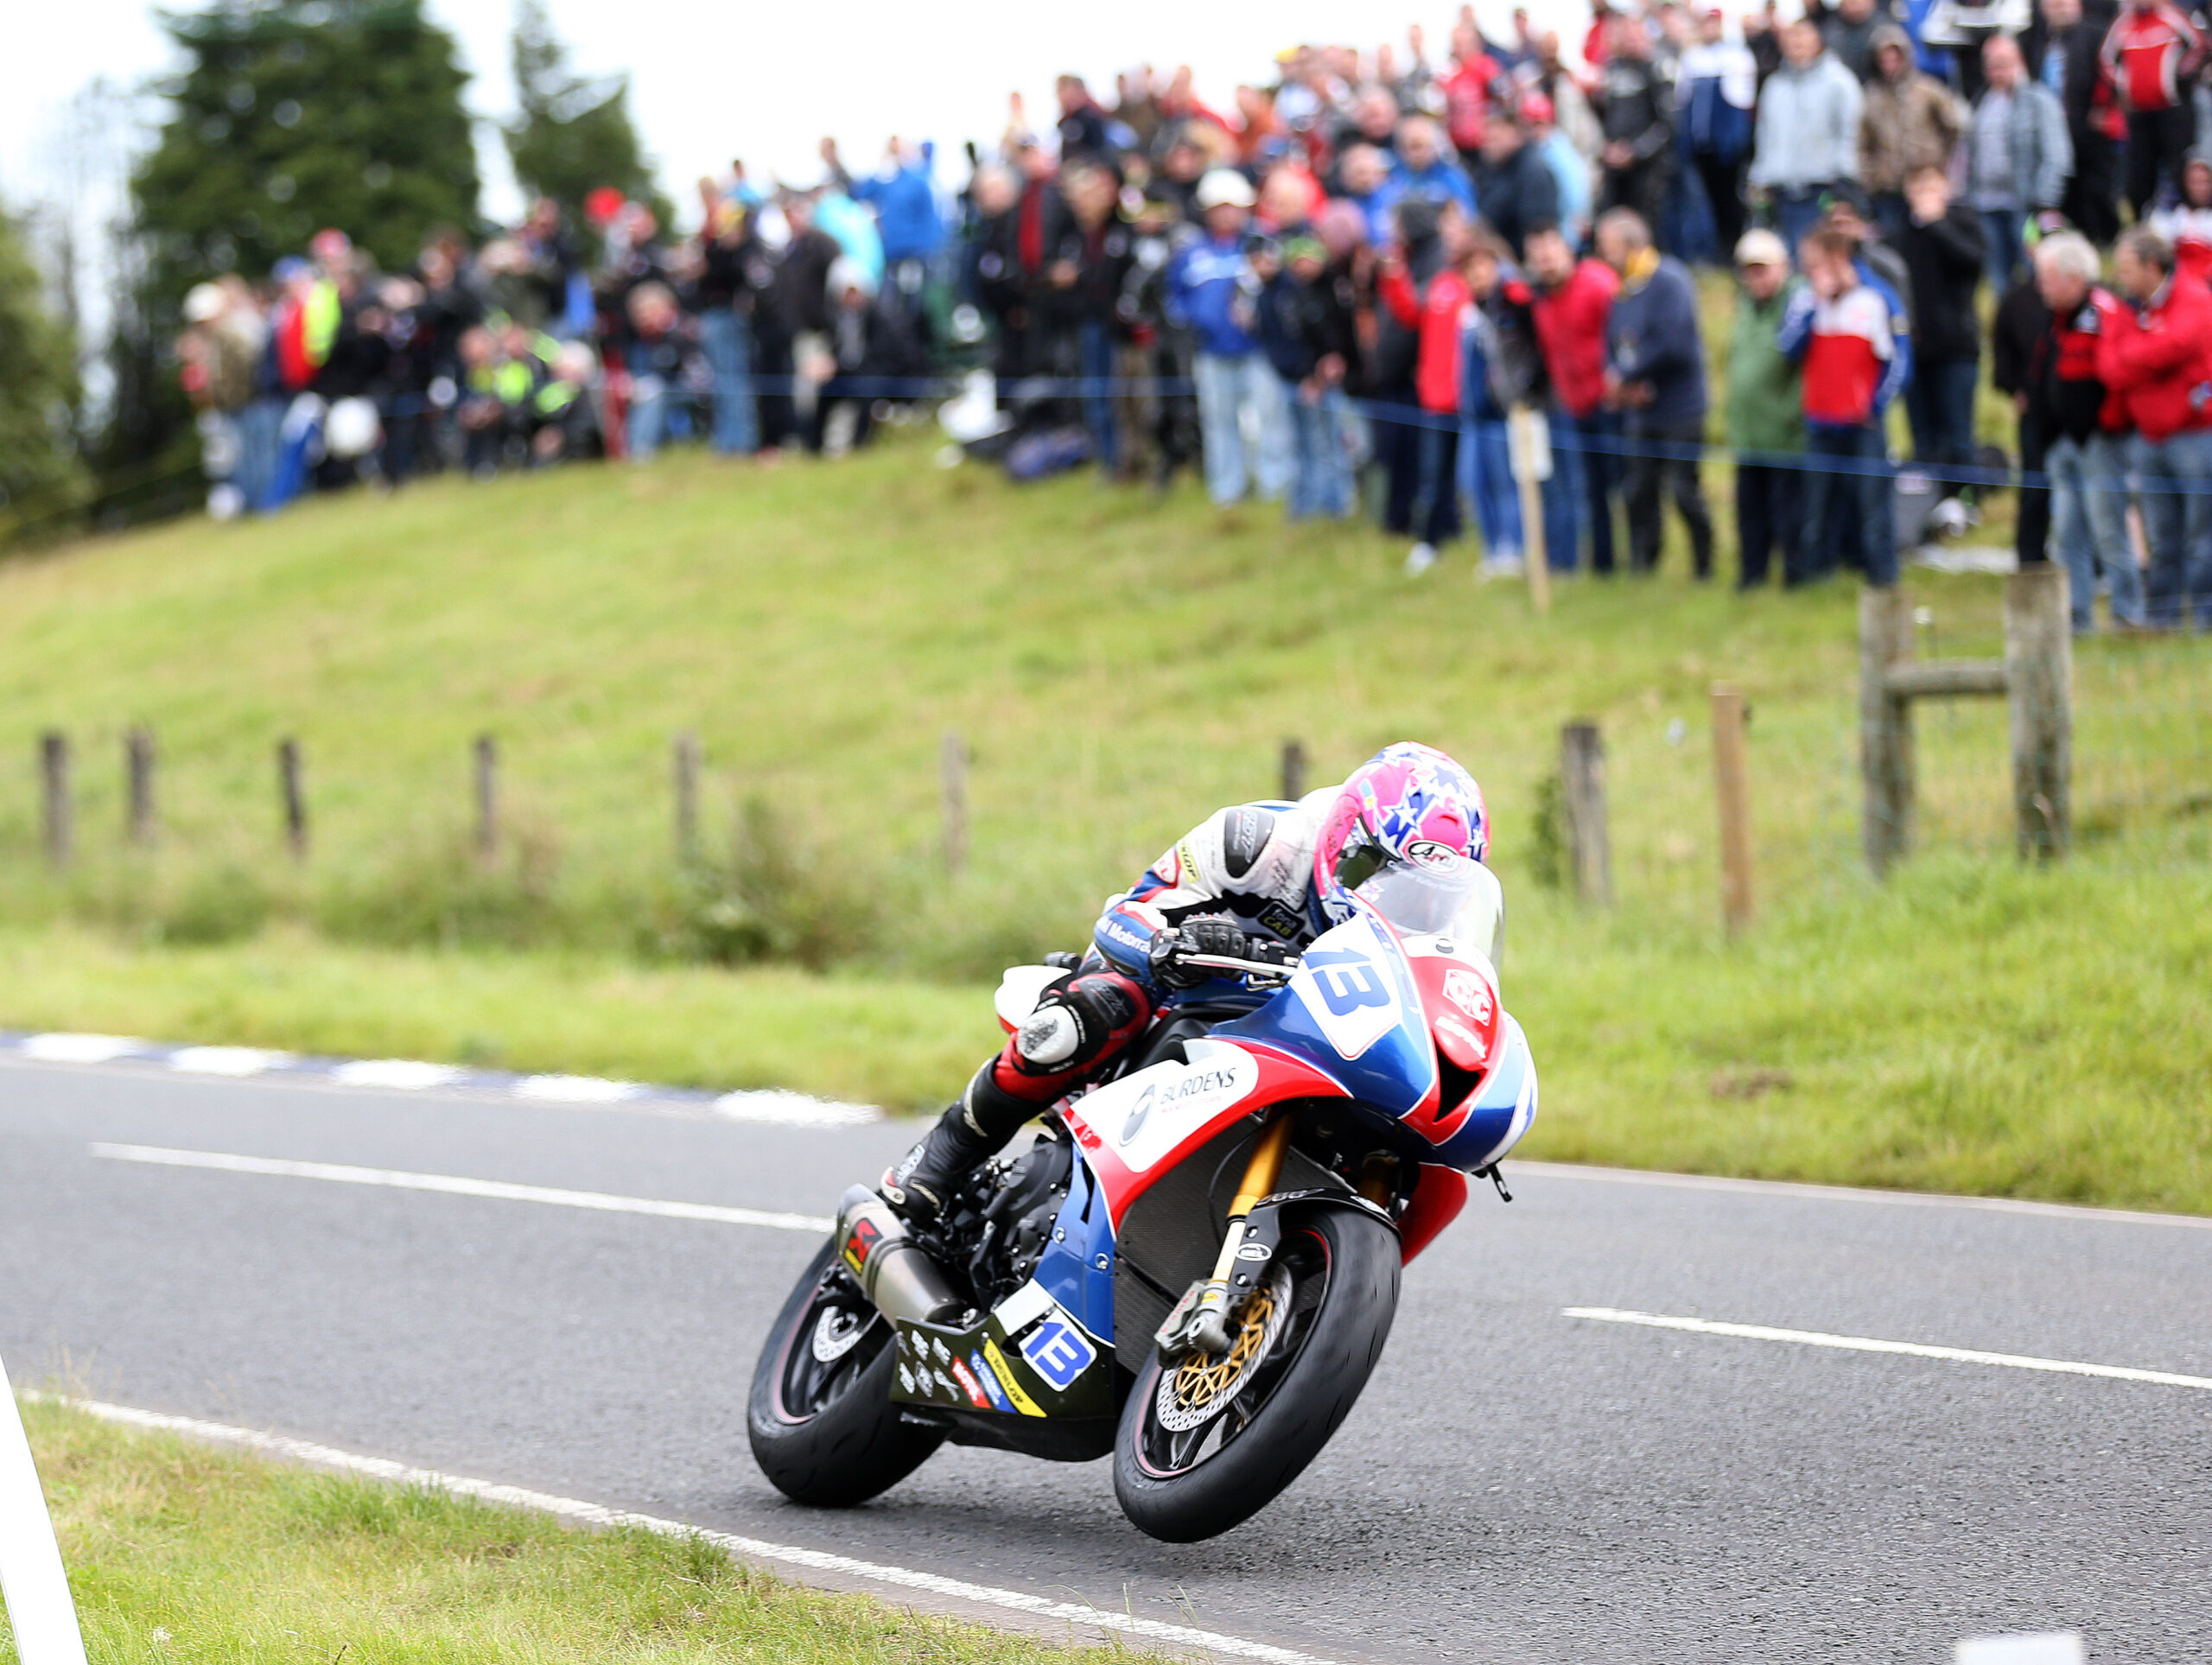 General Lee's Sole Focus At The 2017 MCE Insurance Ulster GP, Winning!